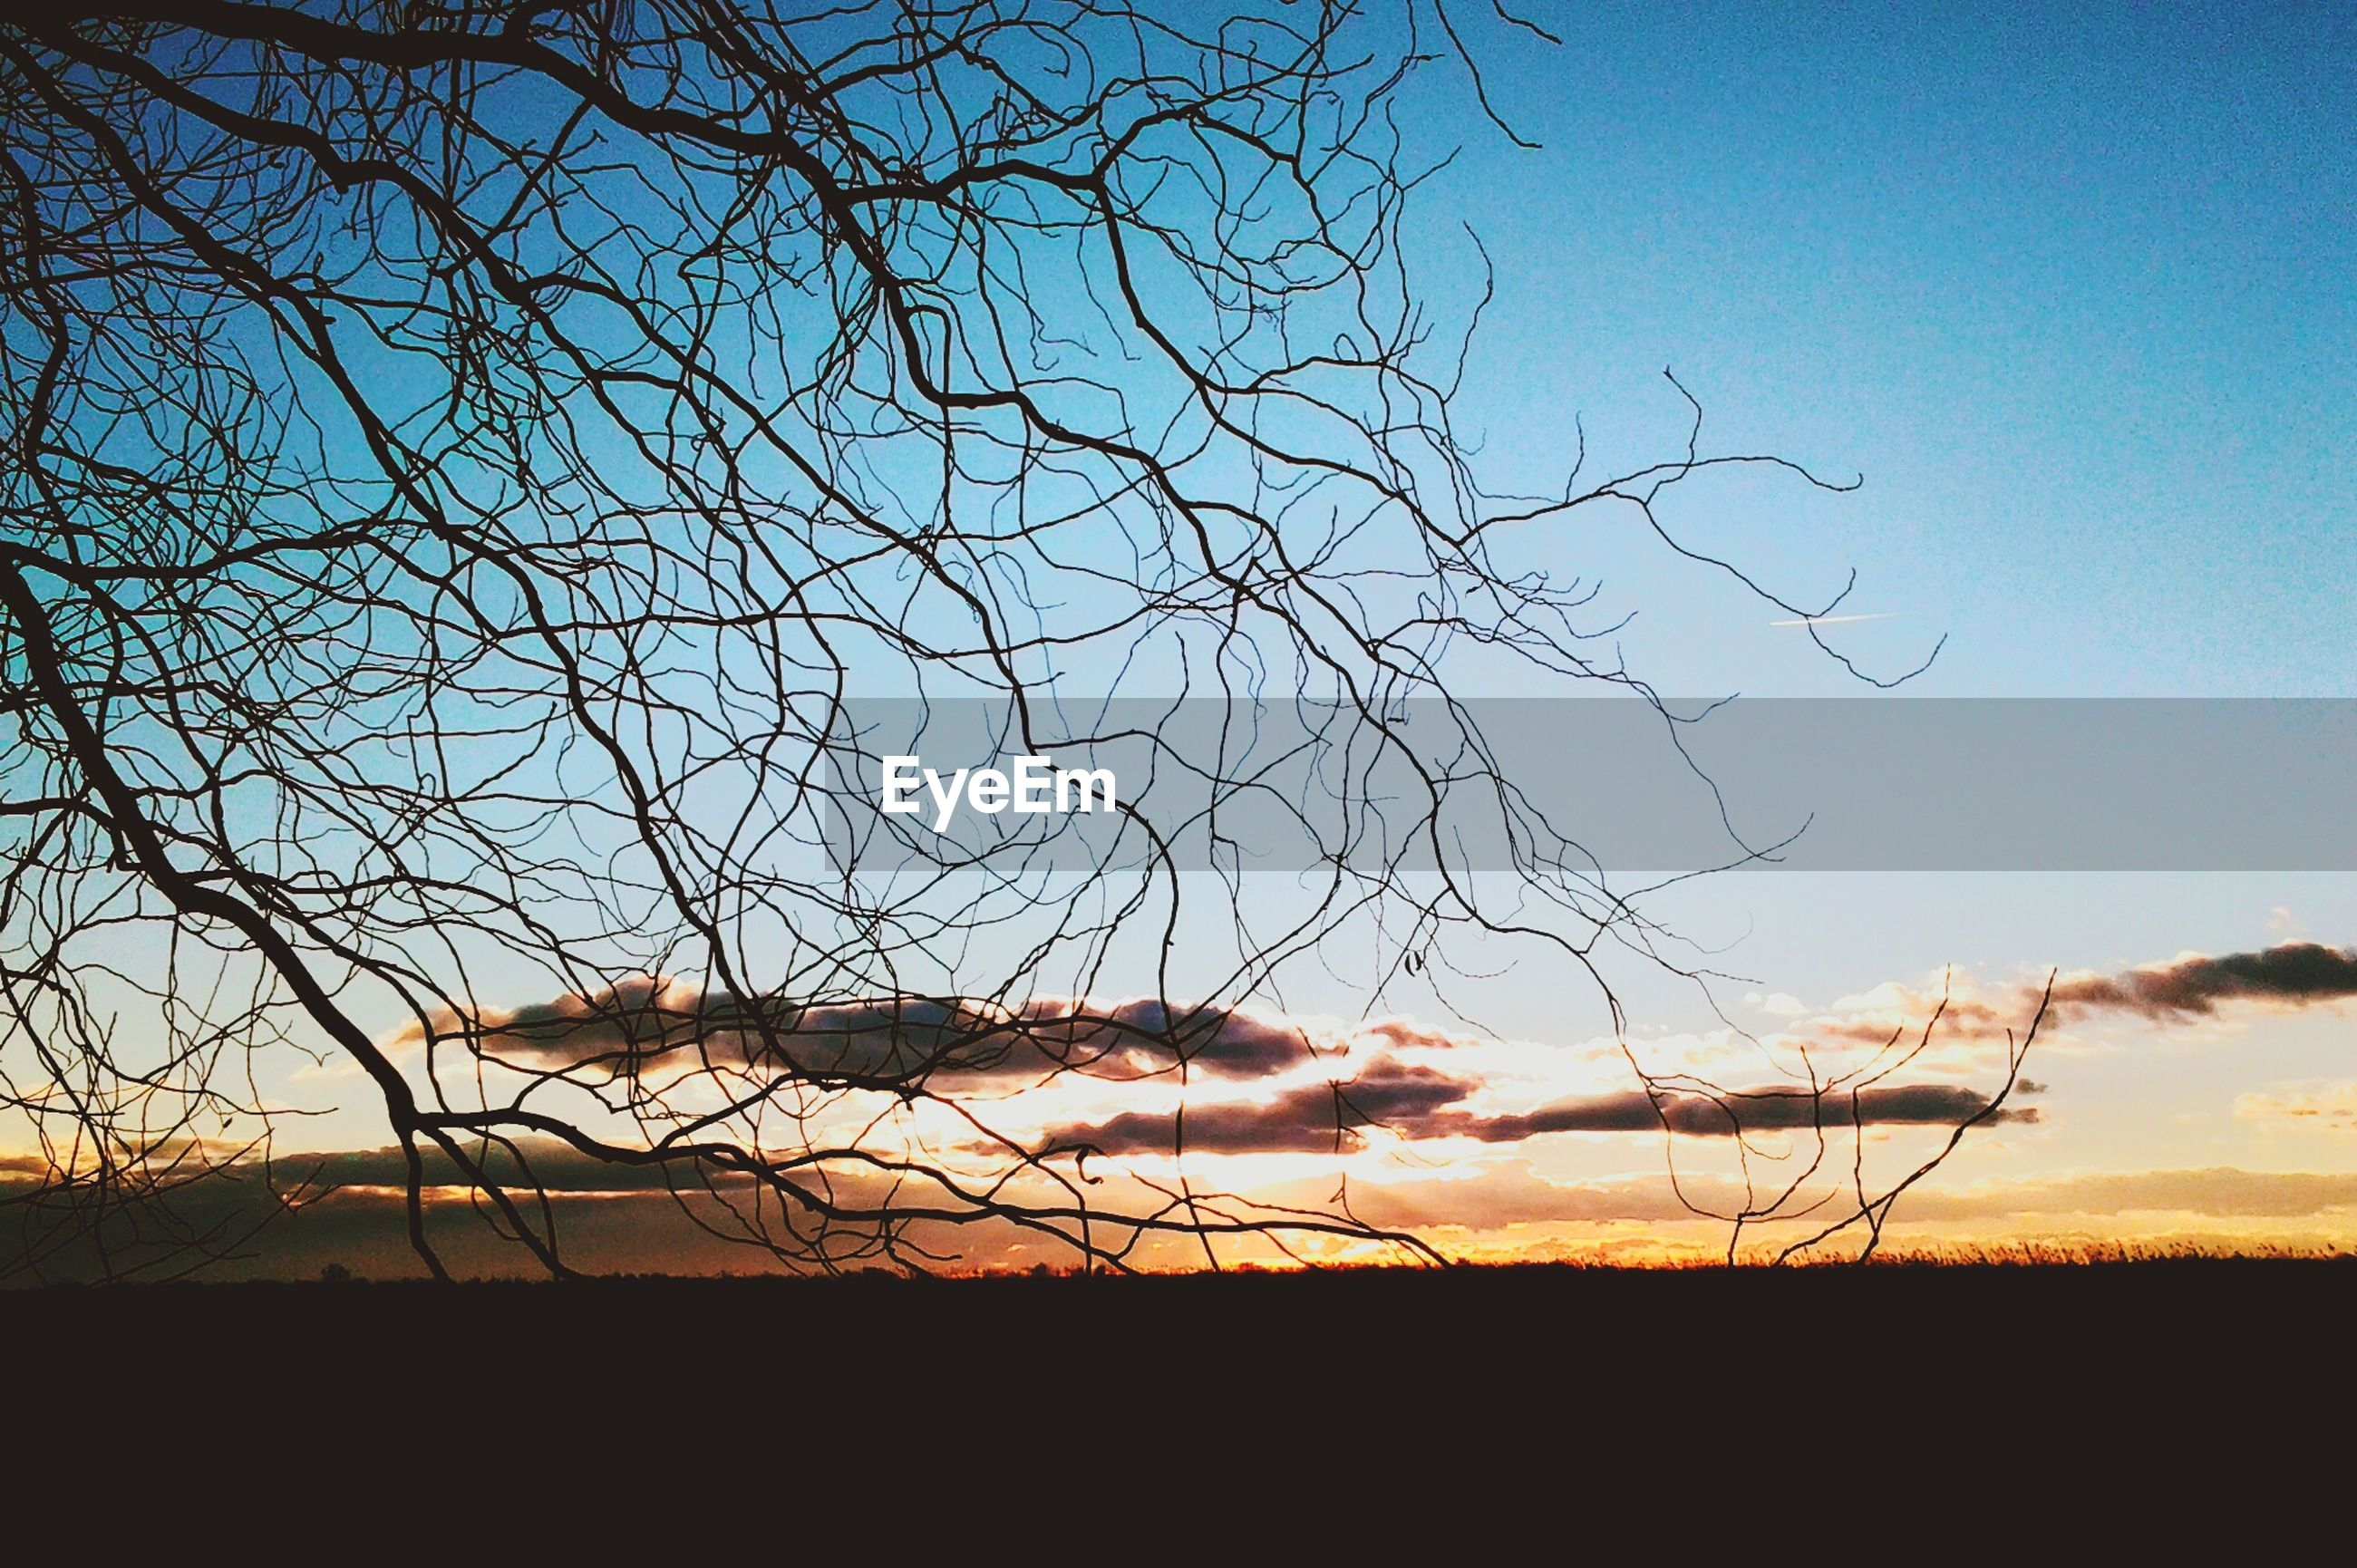 bare tree, sunset, silhouette, landscape, tranquility, field, sky, tranquil scene, scenics, nature, beauty in nature, branch, tree, horizon over land, no people, outdoors, idyllic, orange color, rural scene, non-urban scene